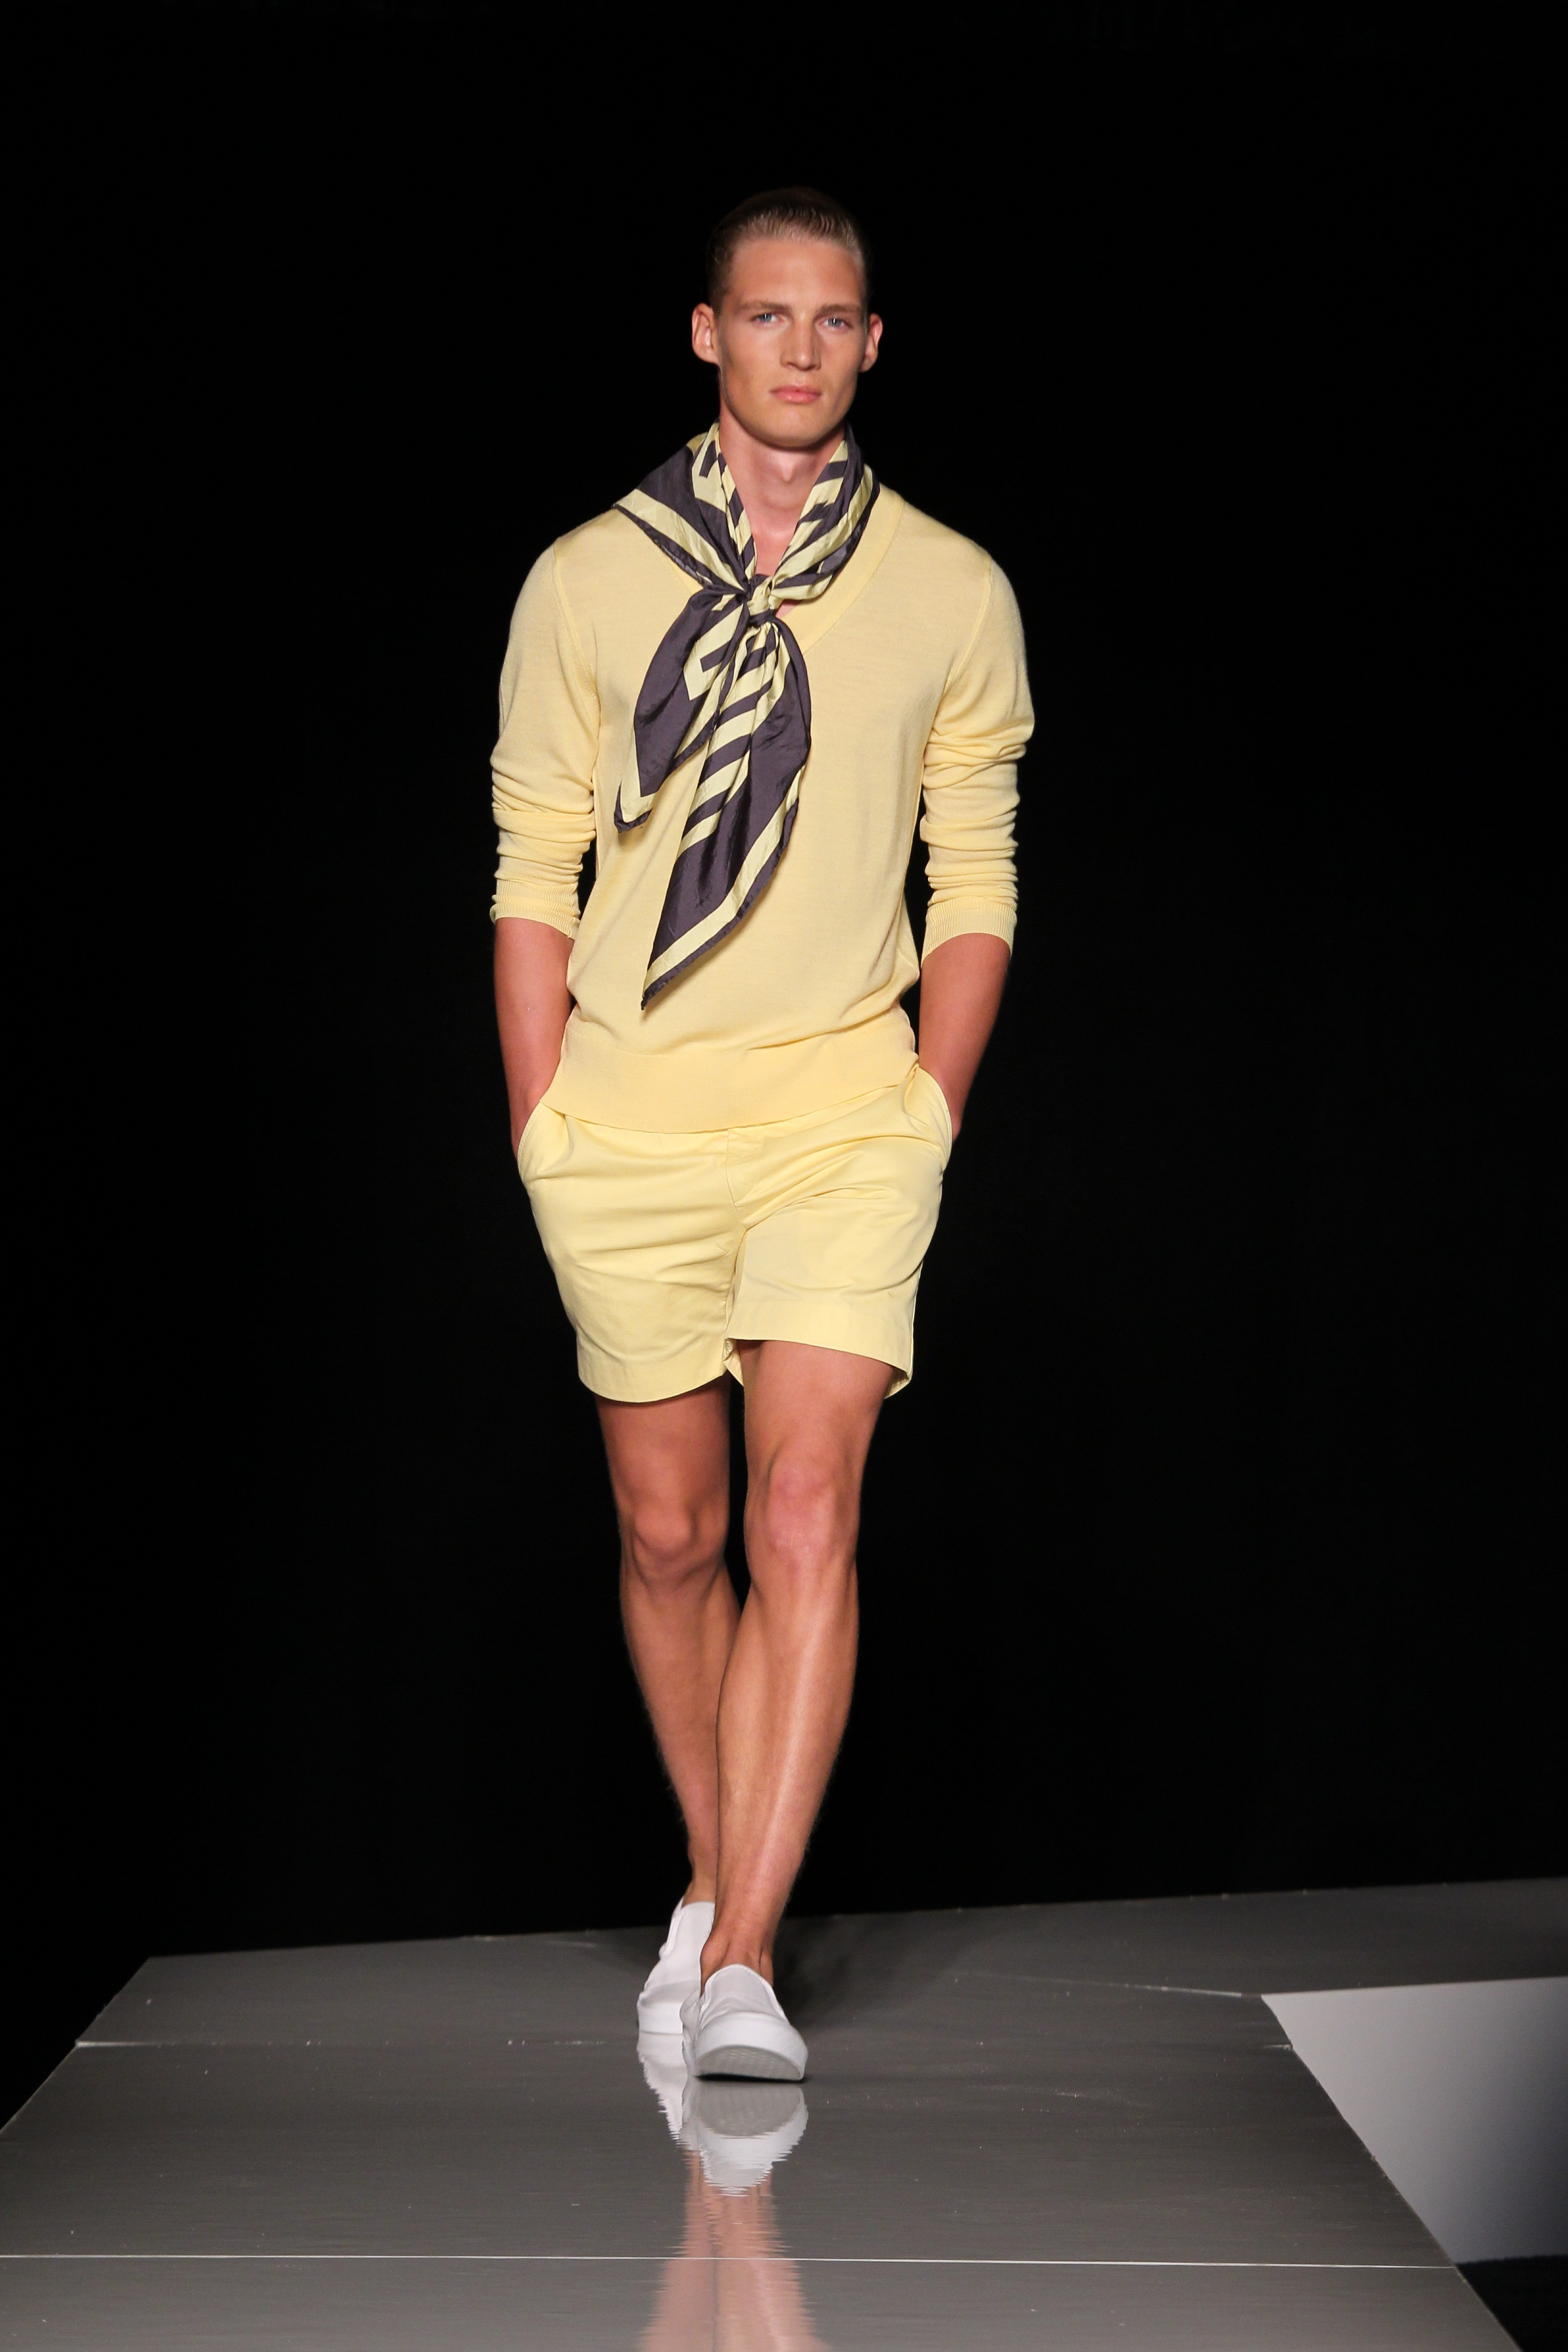 LOOK 3 Bernardo Rojo for Joseph Abboud Spring/Summer 2013 Collection